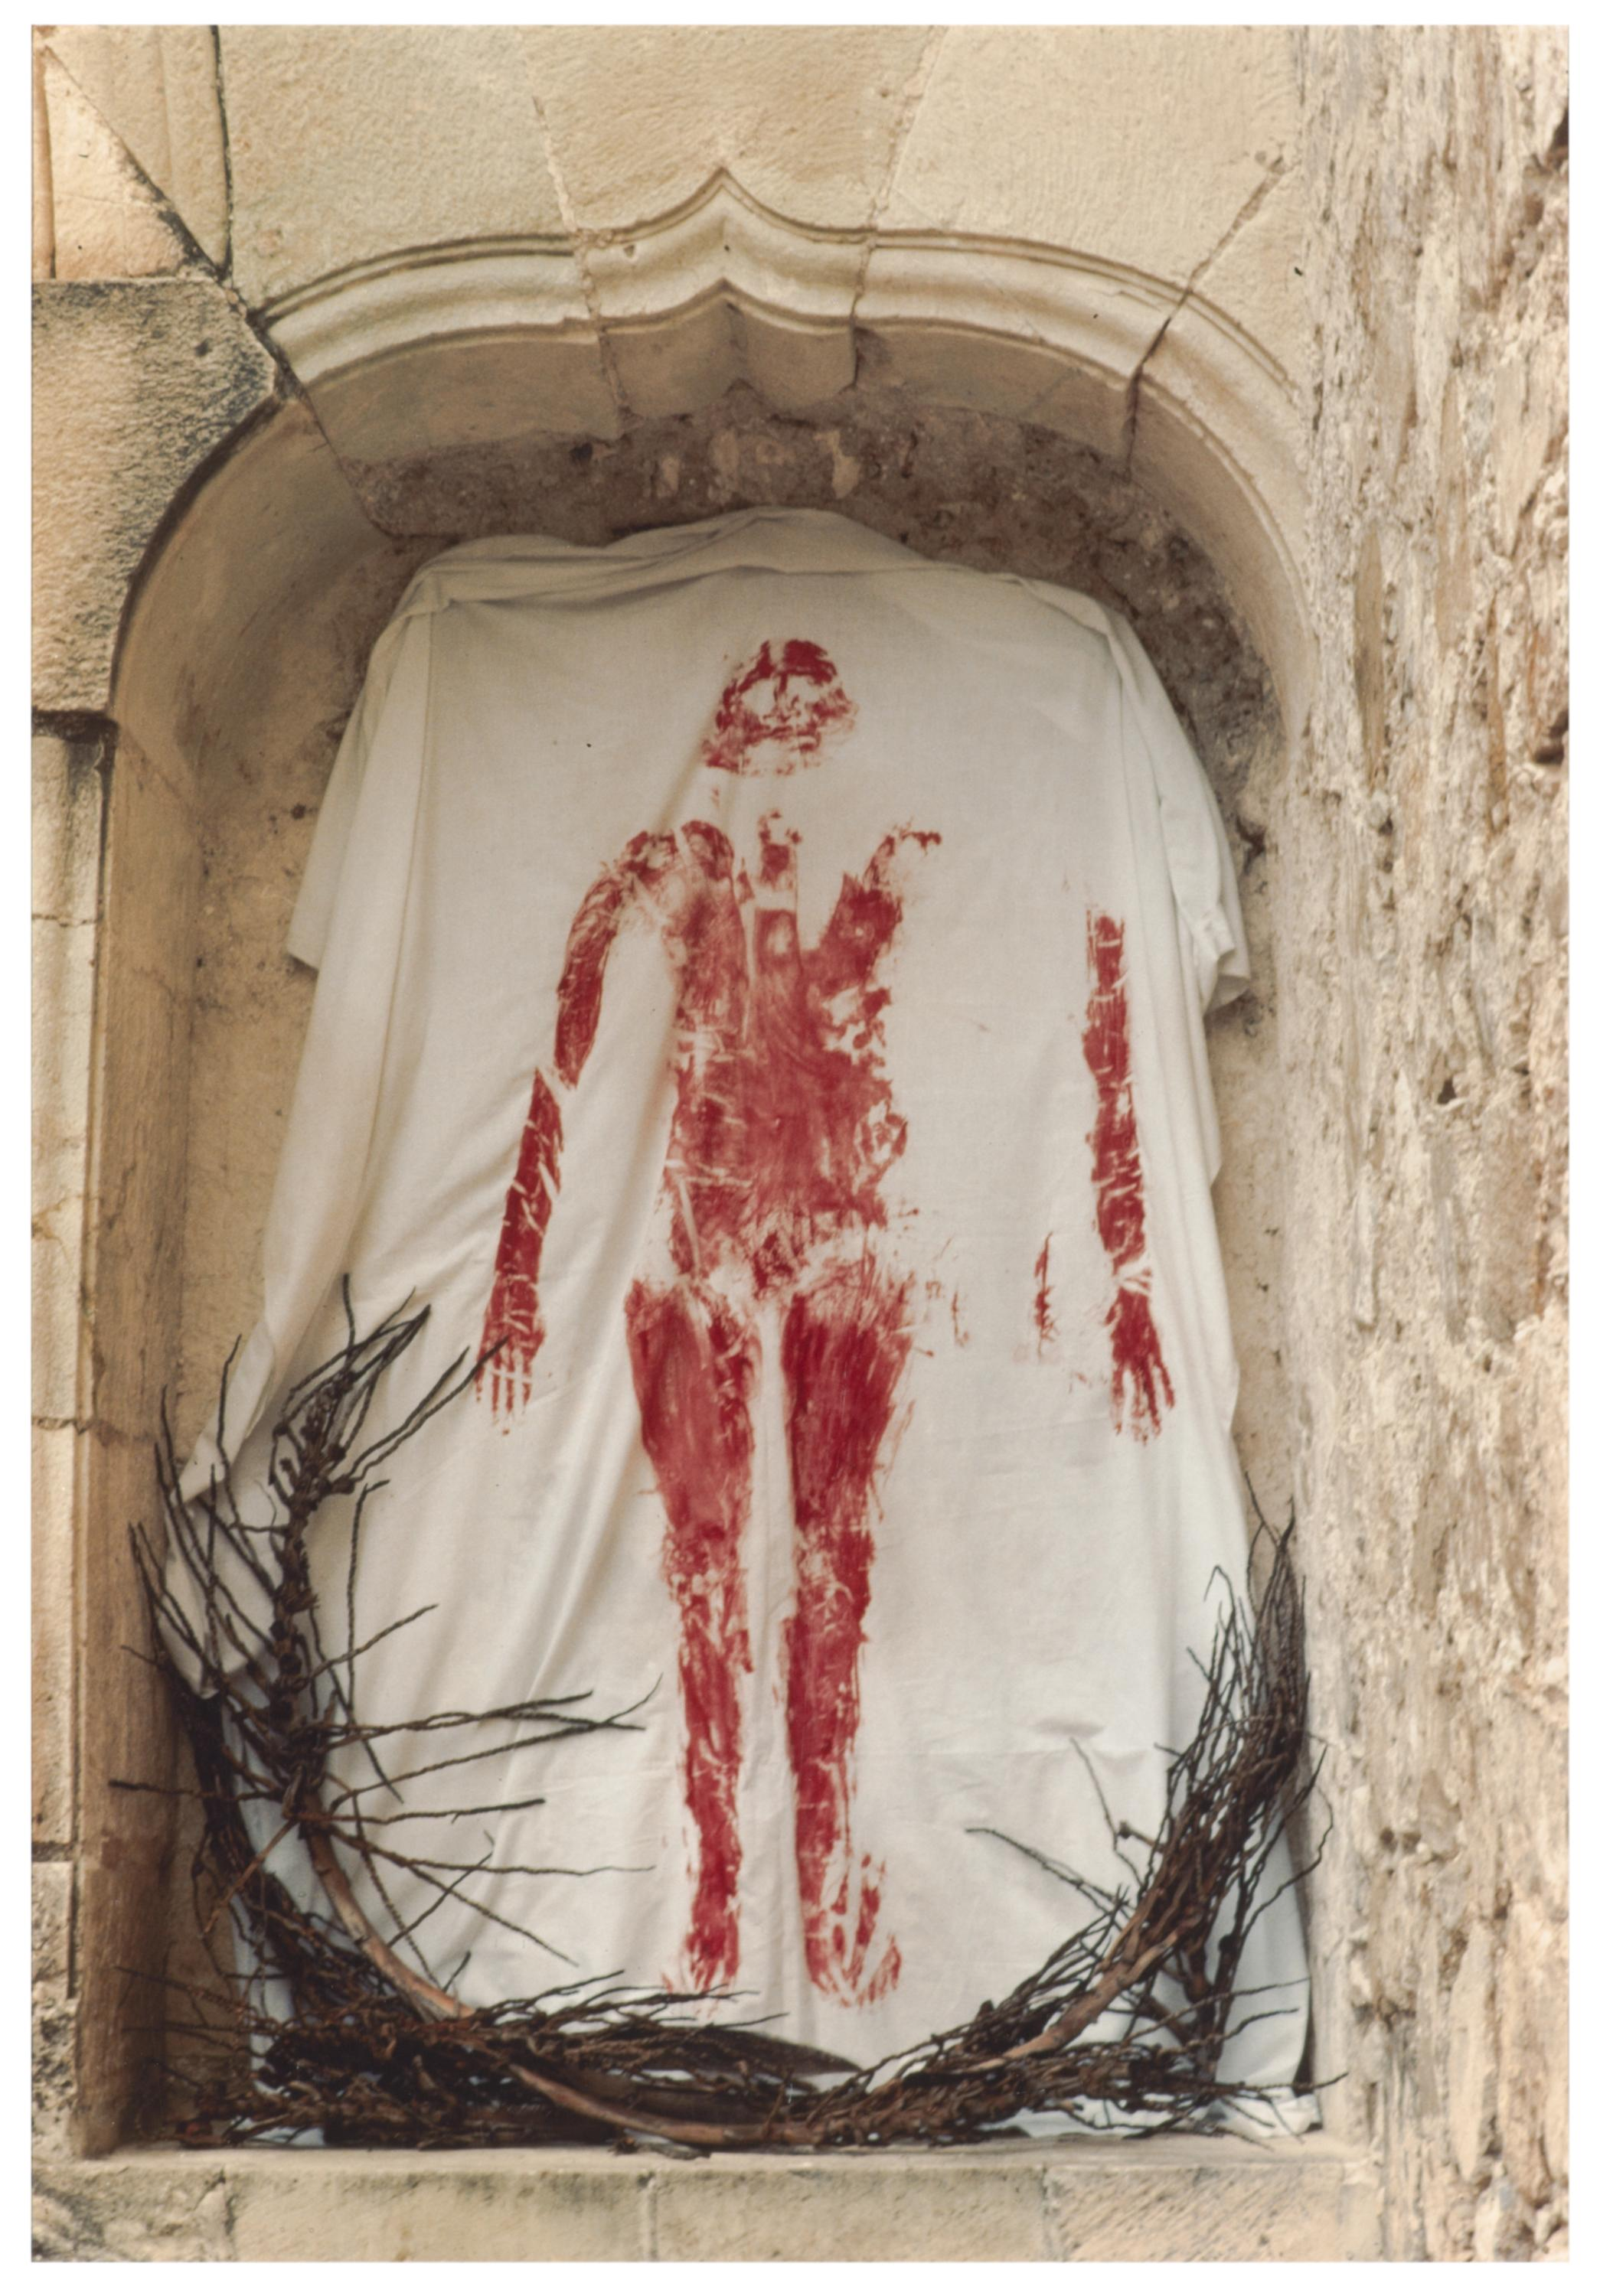 A white sheet with a blood-red imprint of a body hangs in a stone niche.